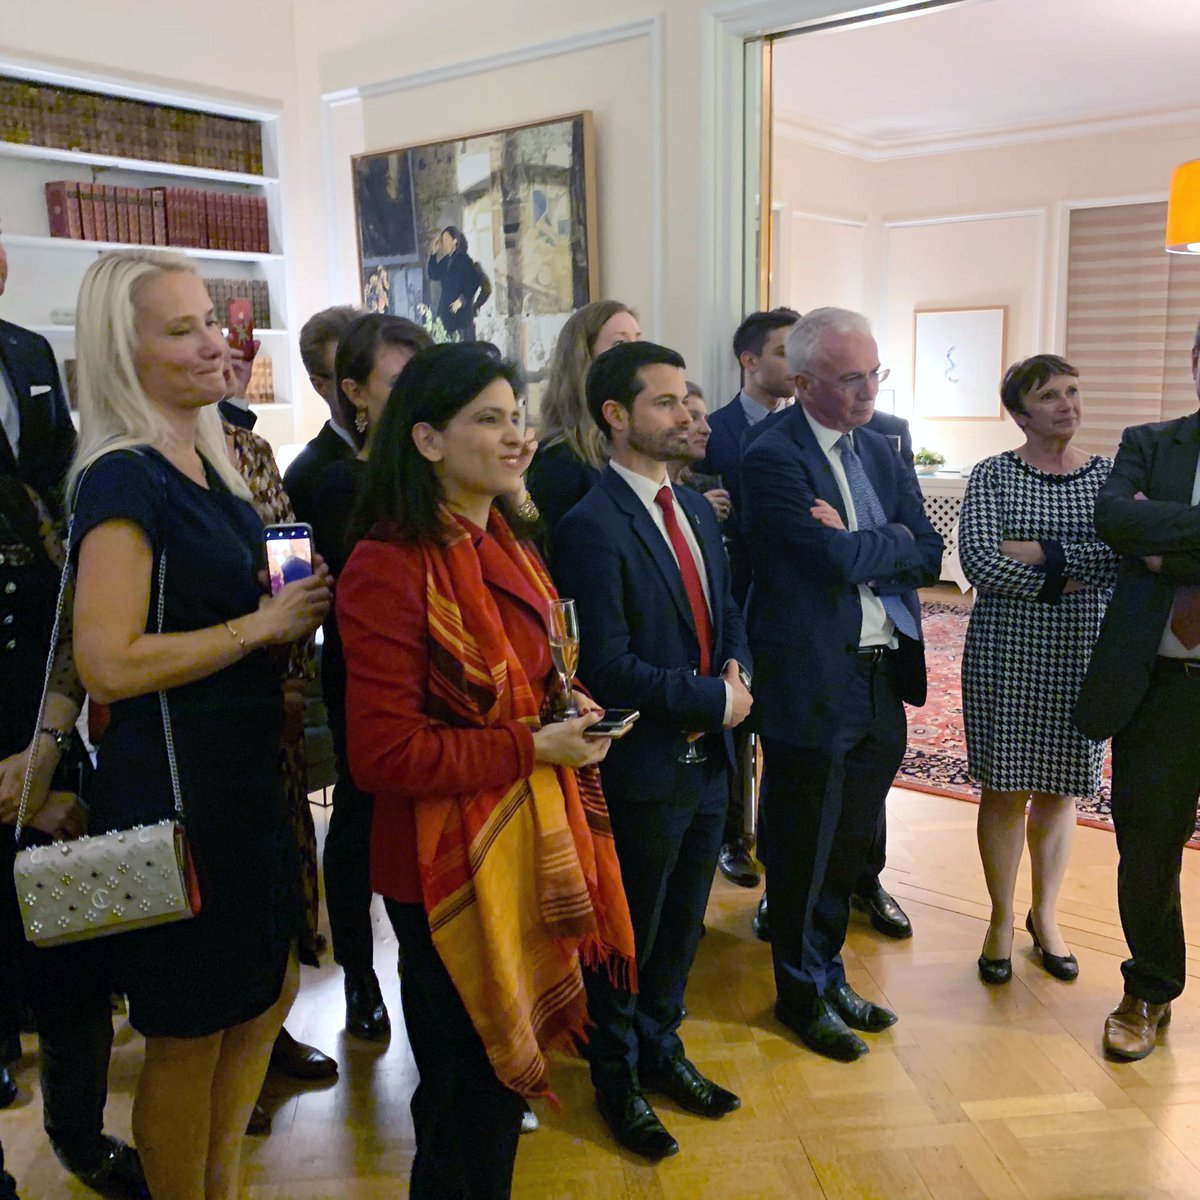 """In an evening organized by @FranceONUGeneve , the global health community bids """"Au revoir"""" to Unitaid ED @LelioMarmora  & celebrates 5 years of service that led to Unitaid's transformation, raised its portfolio, broadened its impact & deepened its partnerships @francediplo"""